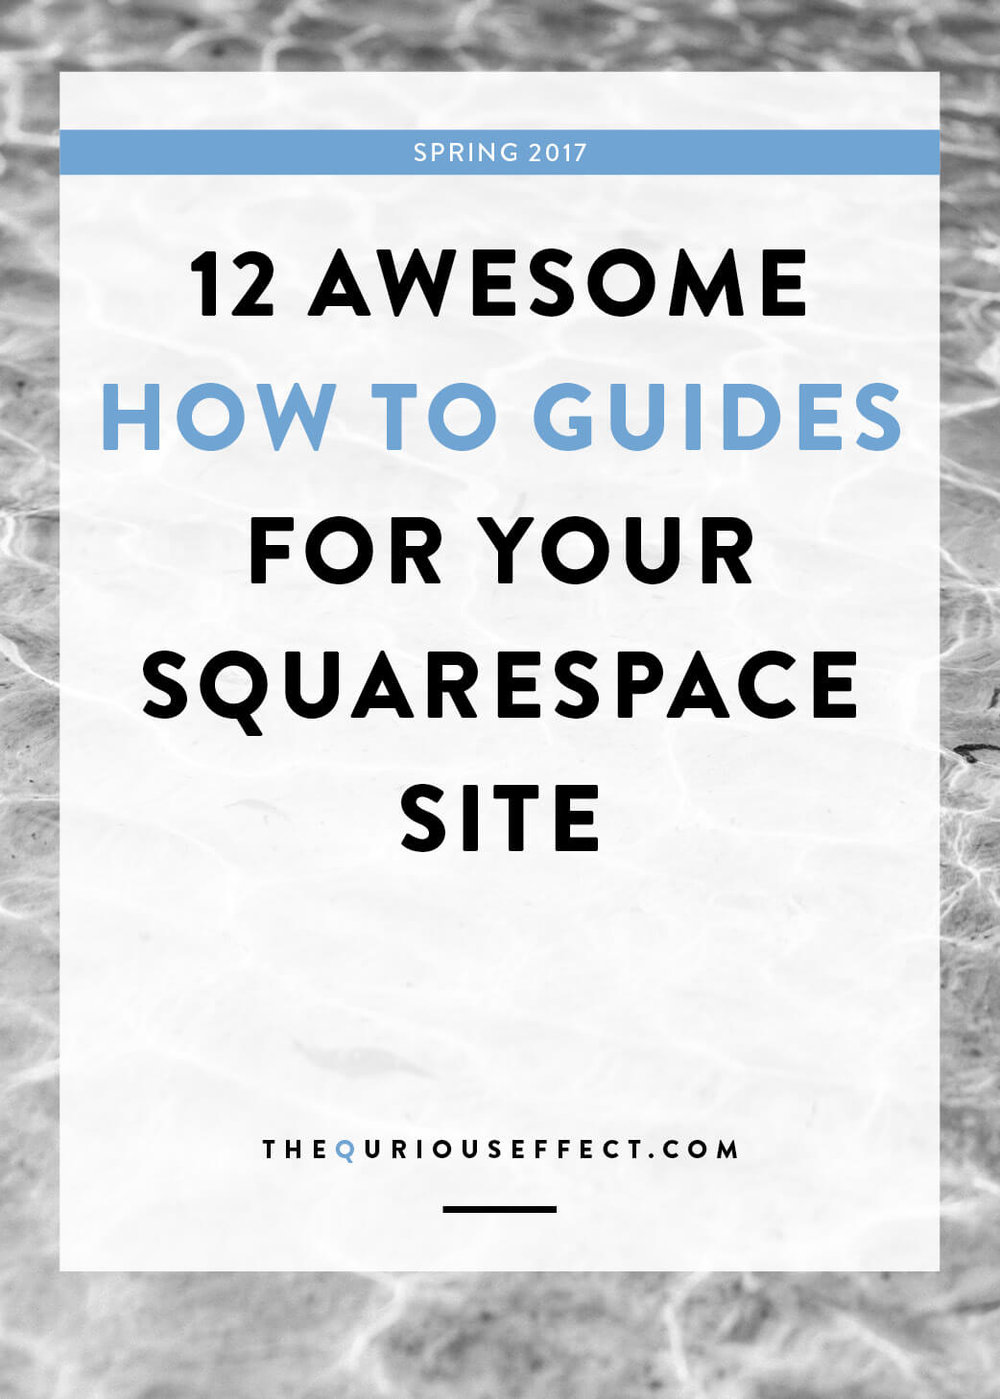 12 awesome guides for your Squrespace site by The Qurious Effect, a brand and Squarespace website designer.